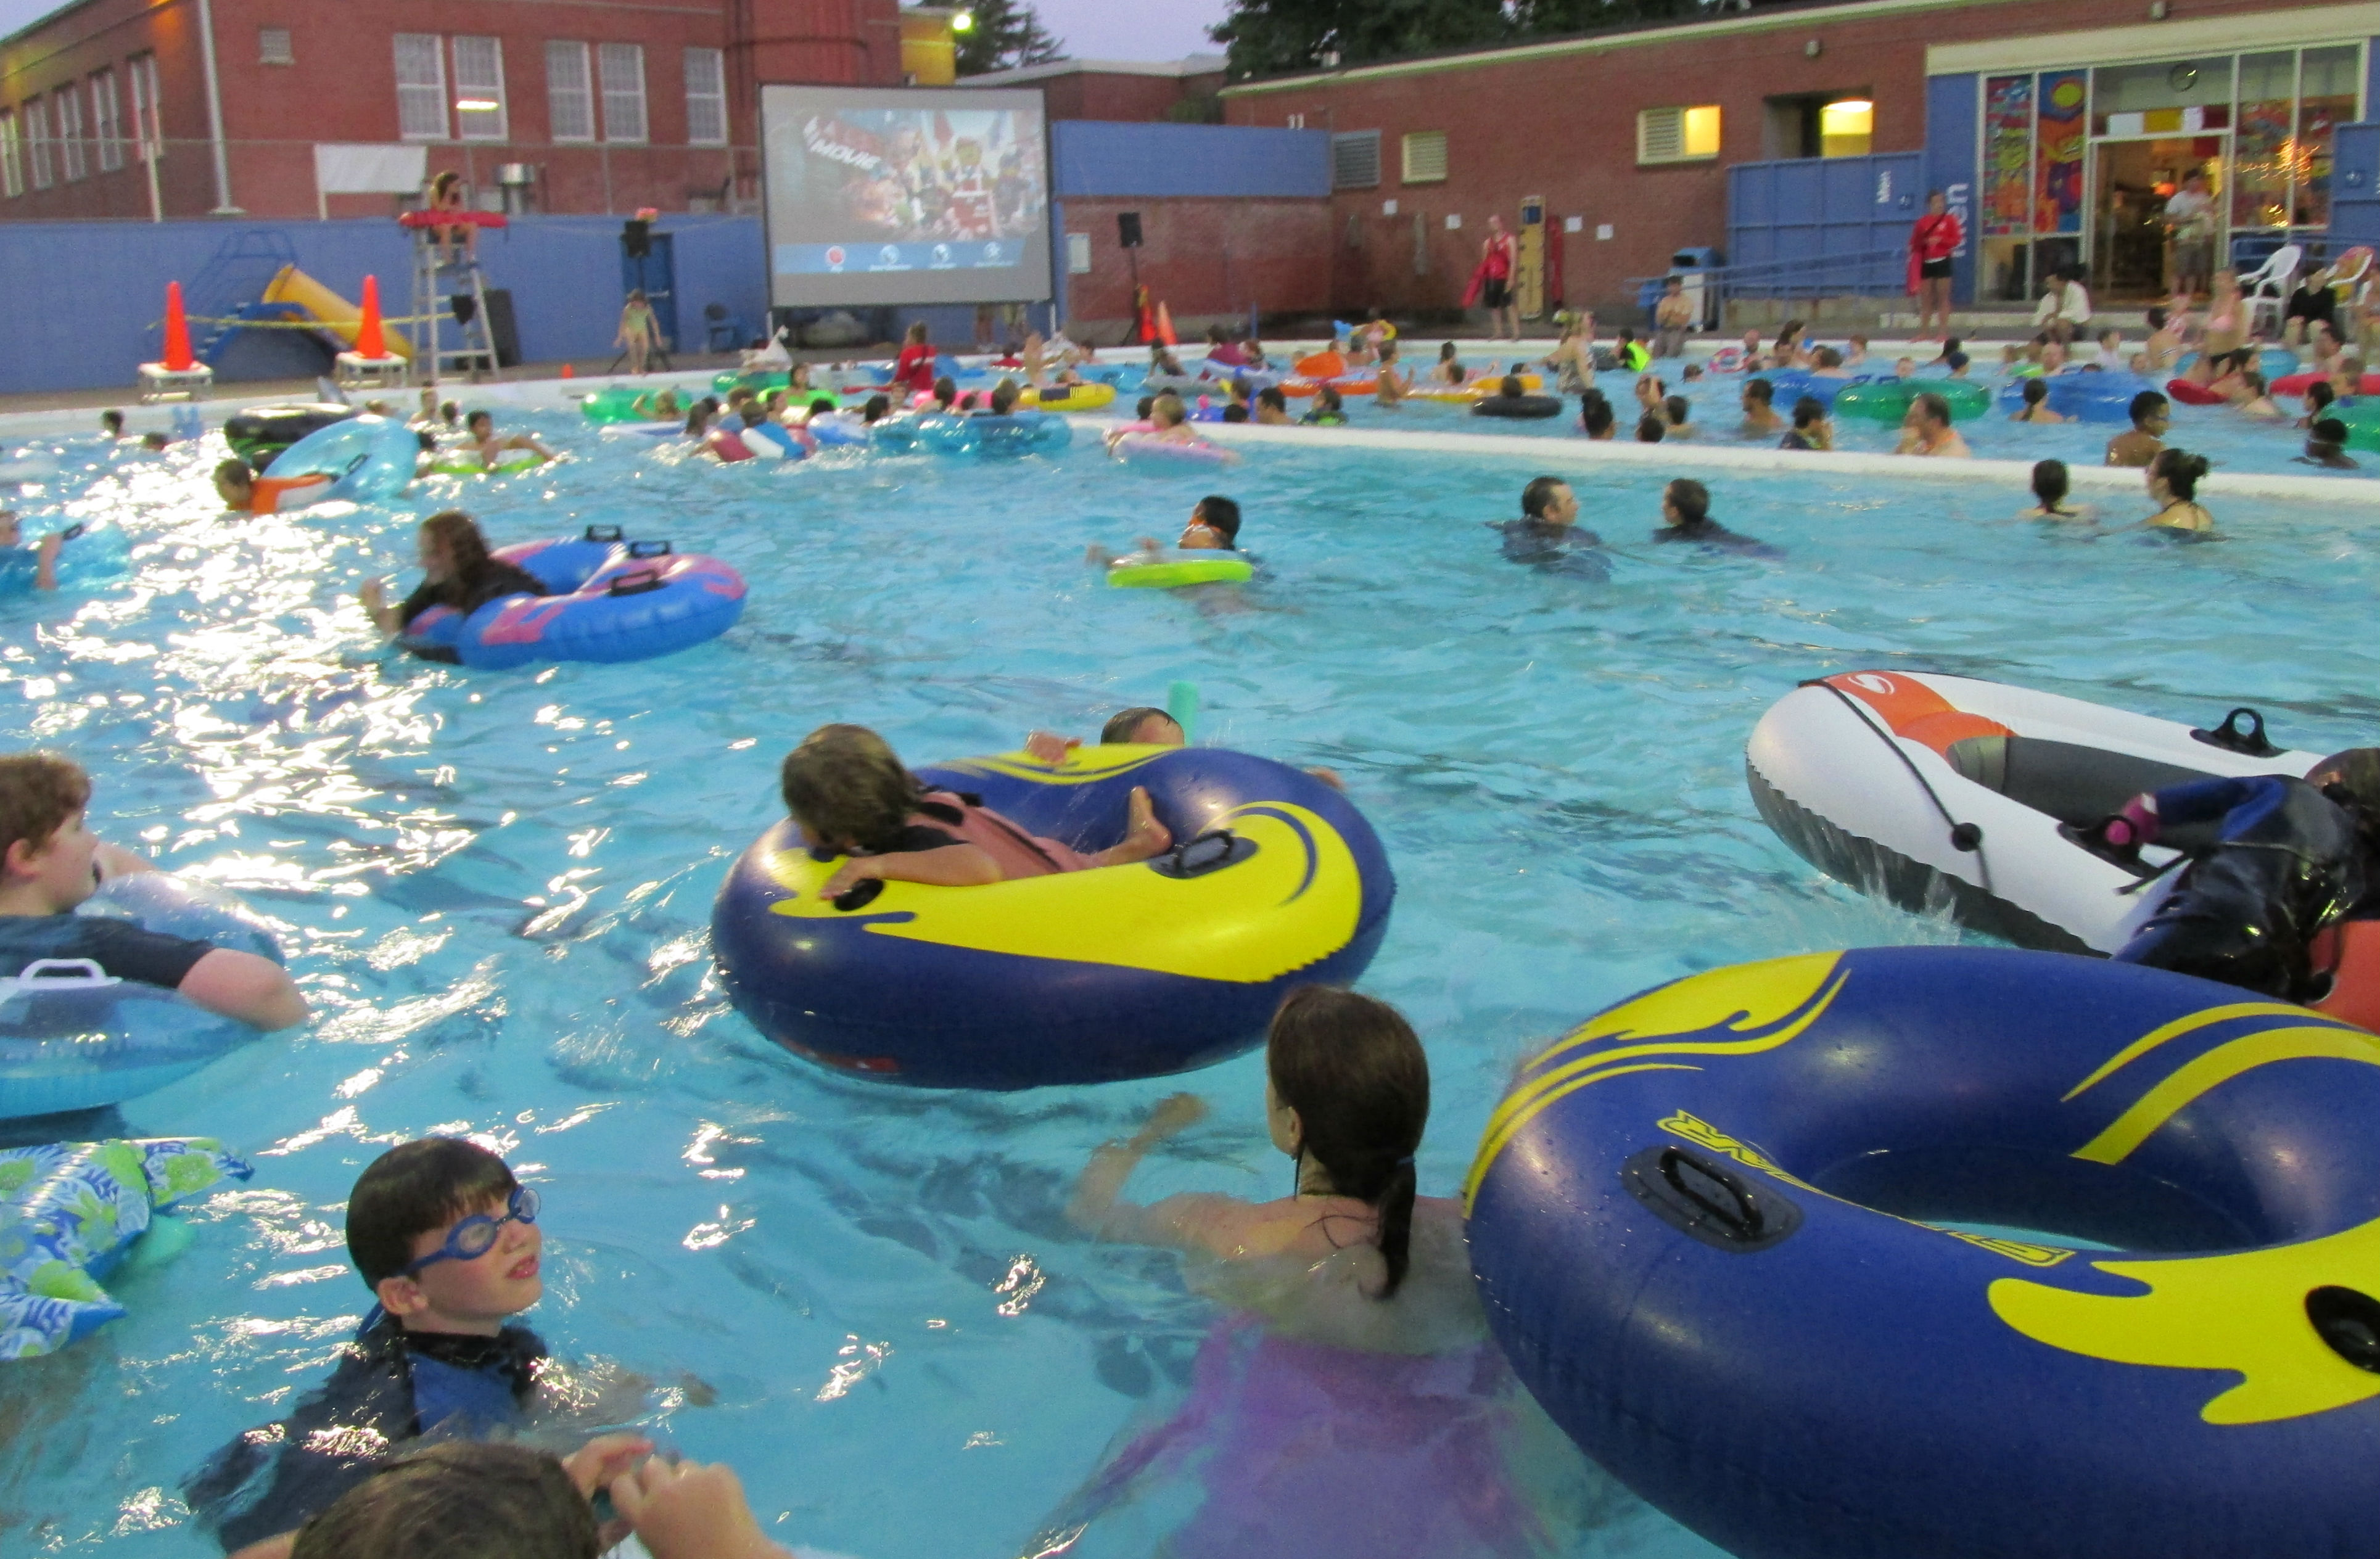 Pools Are Heated To Warmer Than Normal For The Evening Viewing Maintain A Comfort Level People In Water